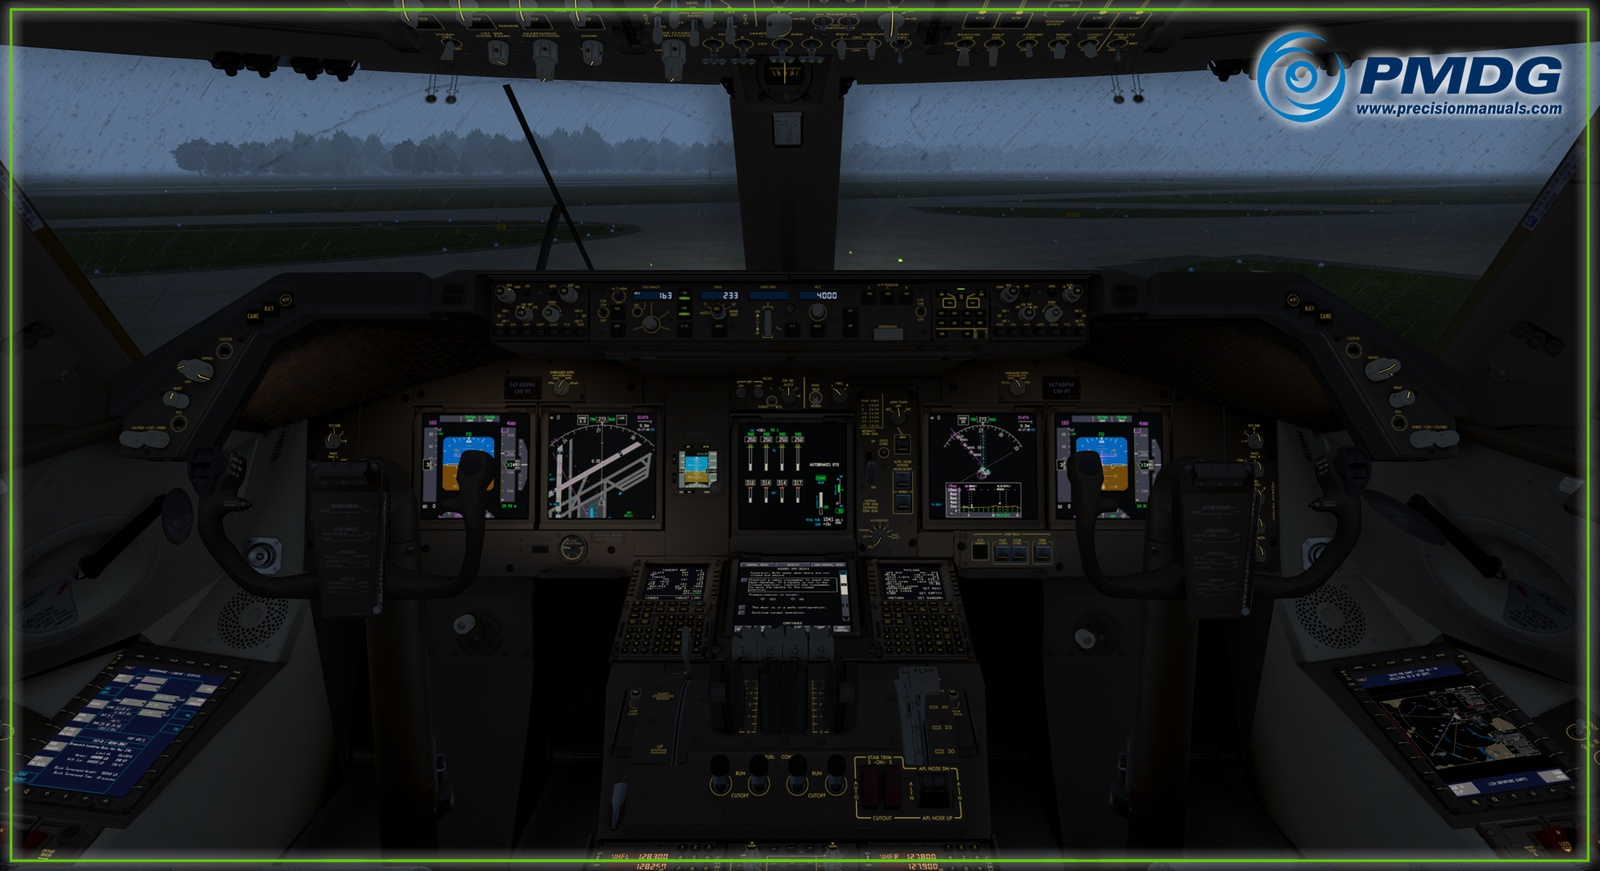 UPDATE: [NEW INFO] PMDG Previews New Shot of the 747-8 – EFB